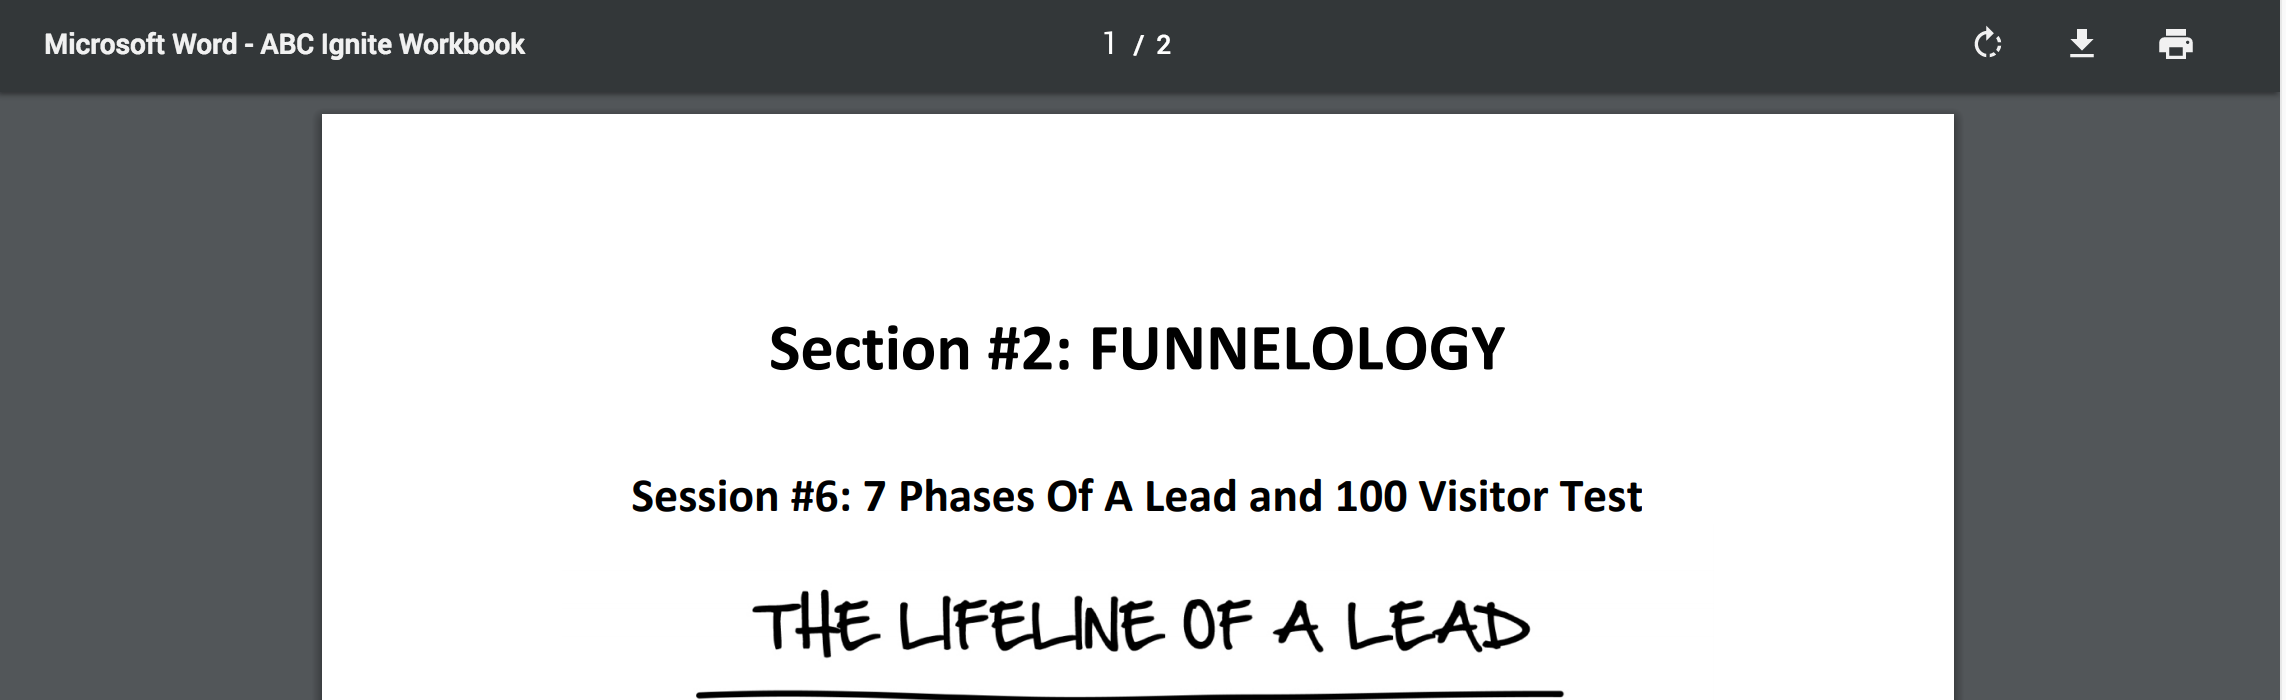 PDF - Day 5 - Step 2 of 4 -  7 Phases Of A Lead and 100 Visitor Test